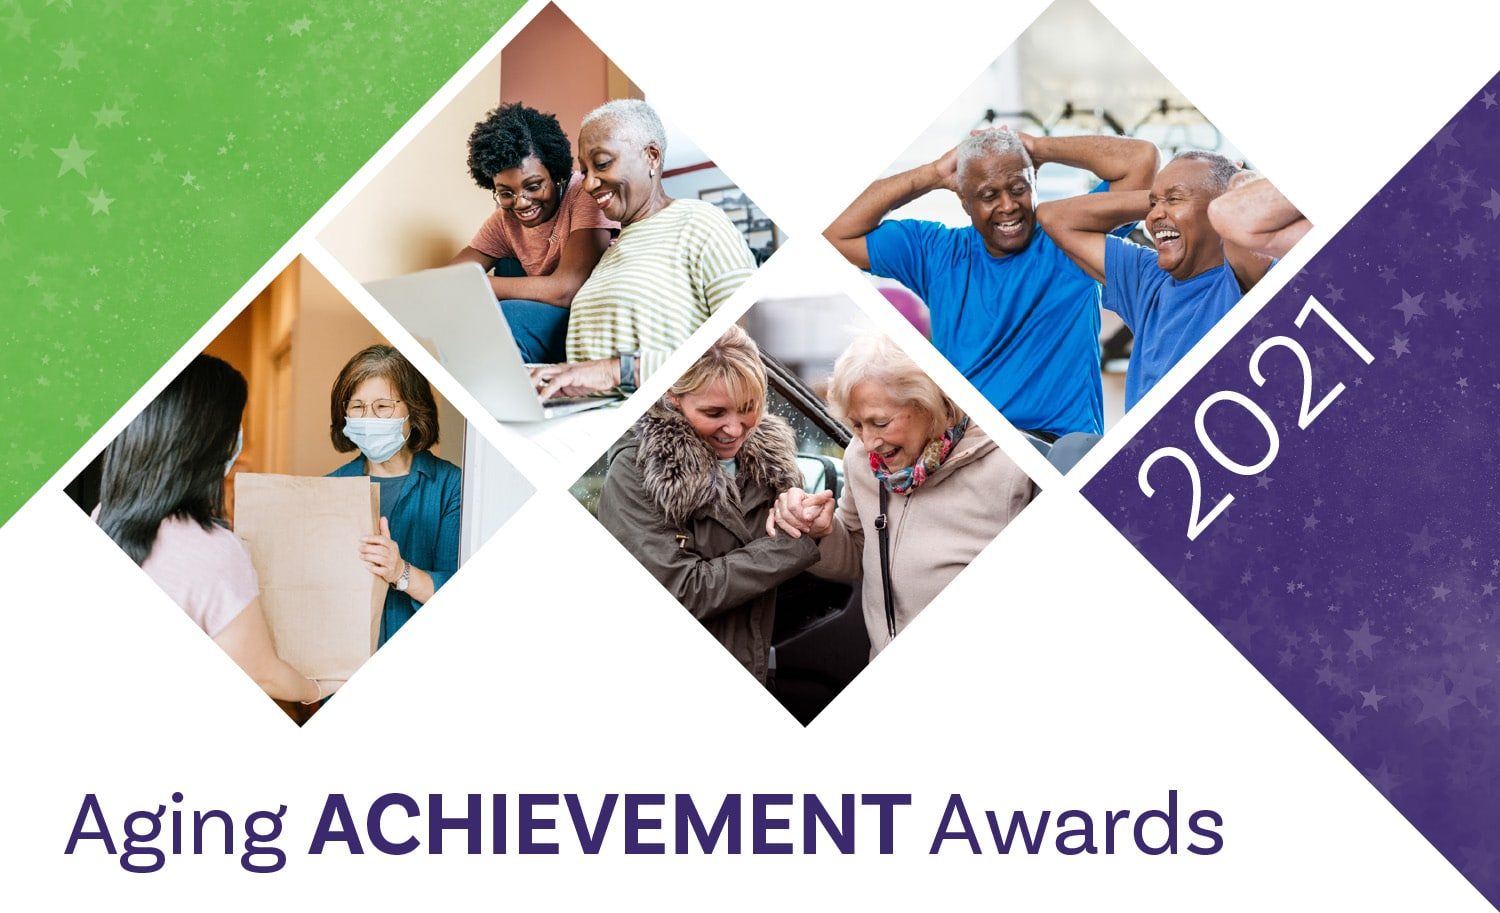 n4a Aging Achievement Awards 2021